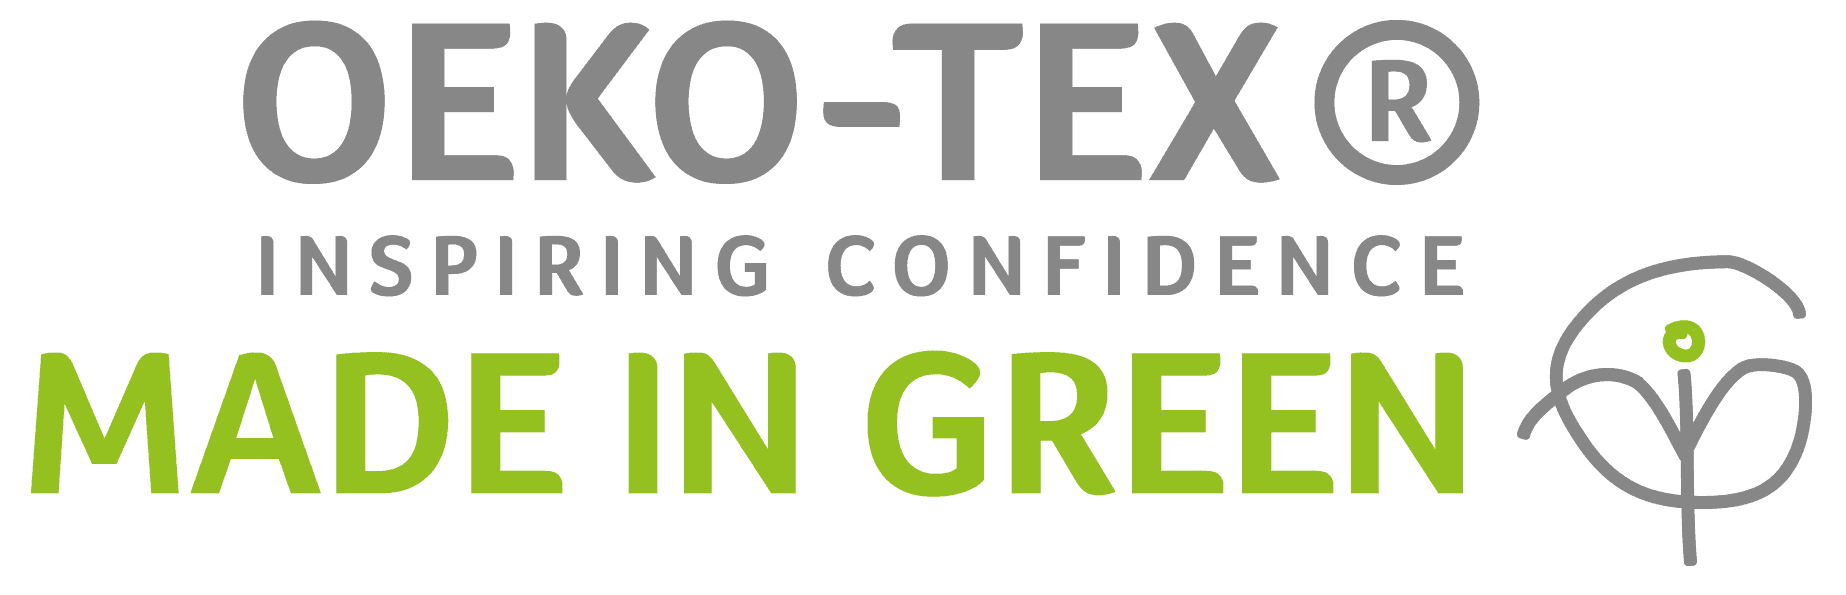 MADE IN GREEN by OEKO TEX (R)